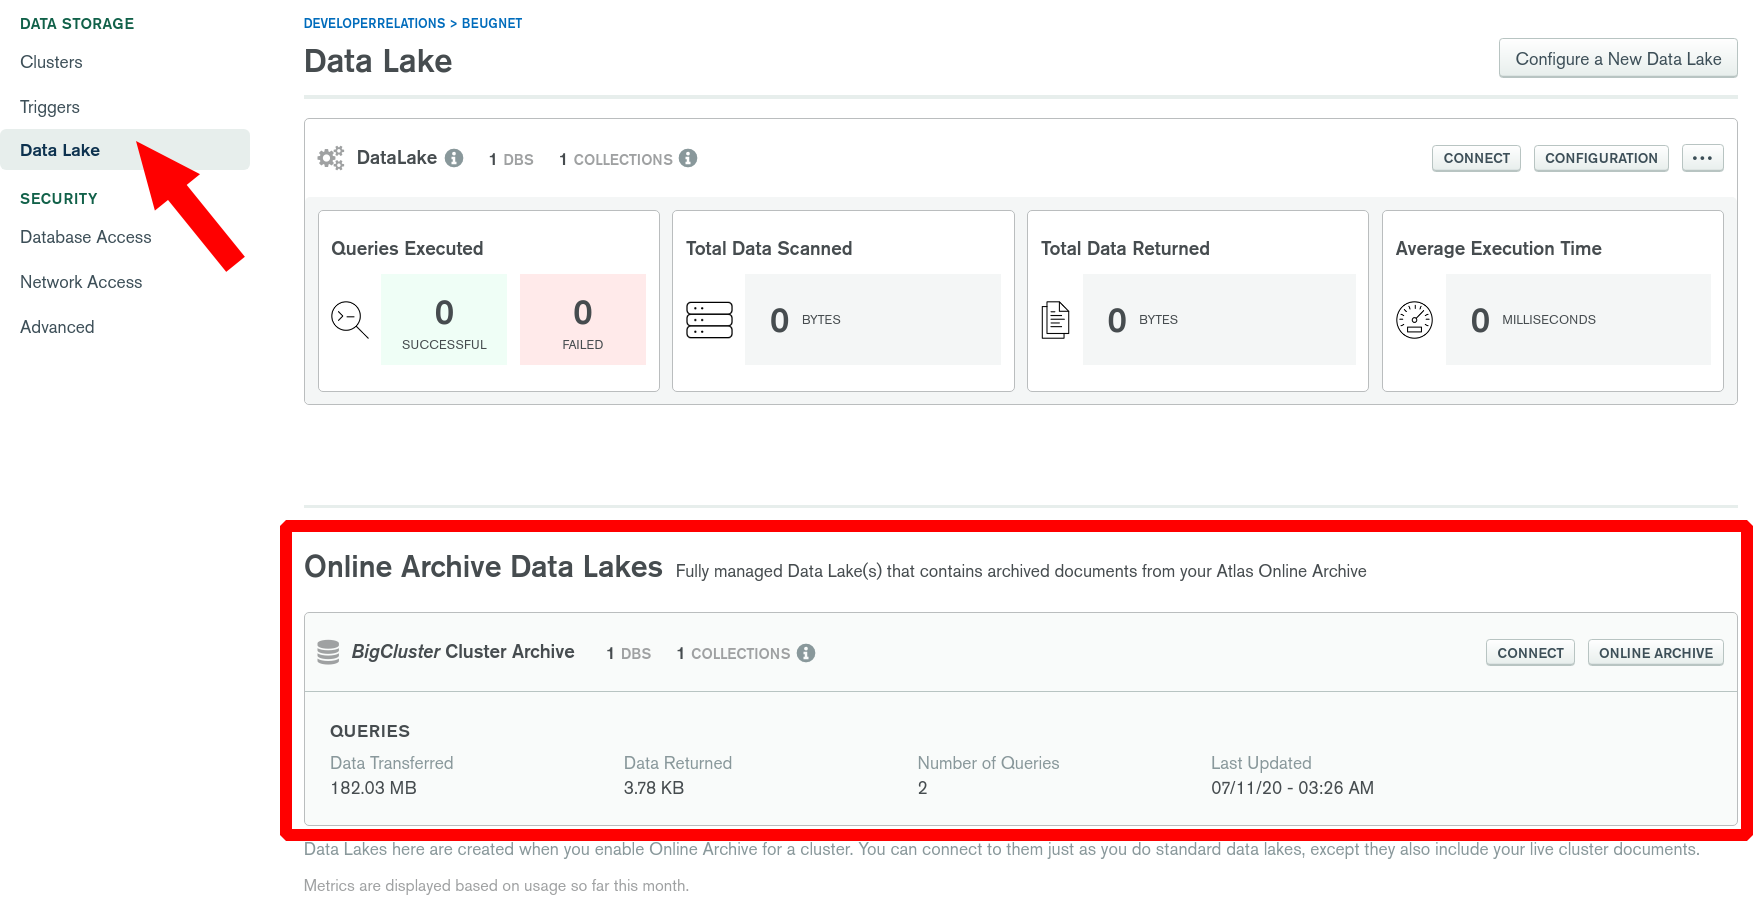 Data Lake already configured for Online Archive